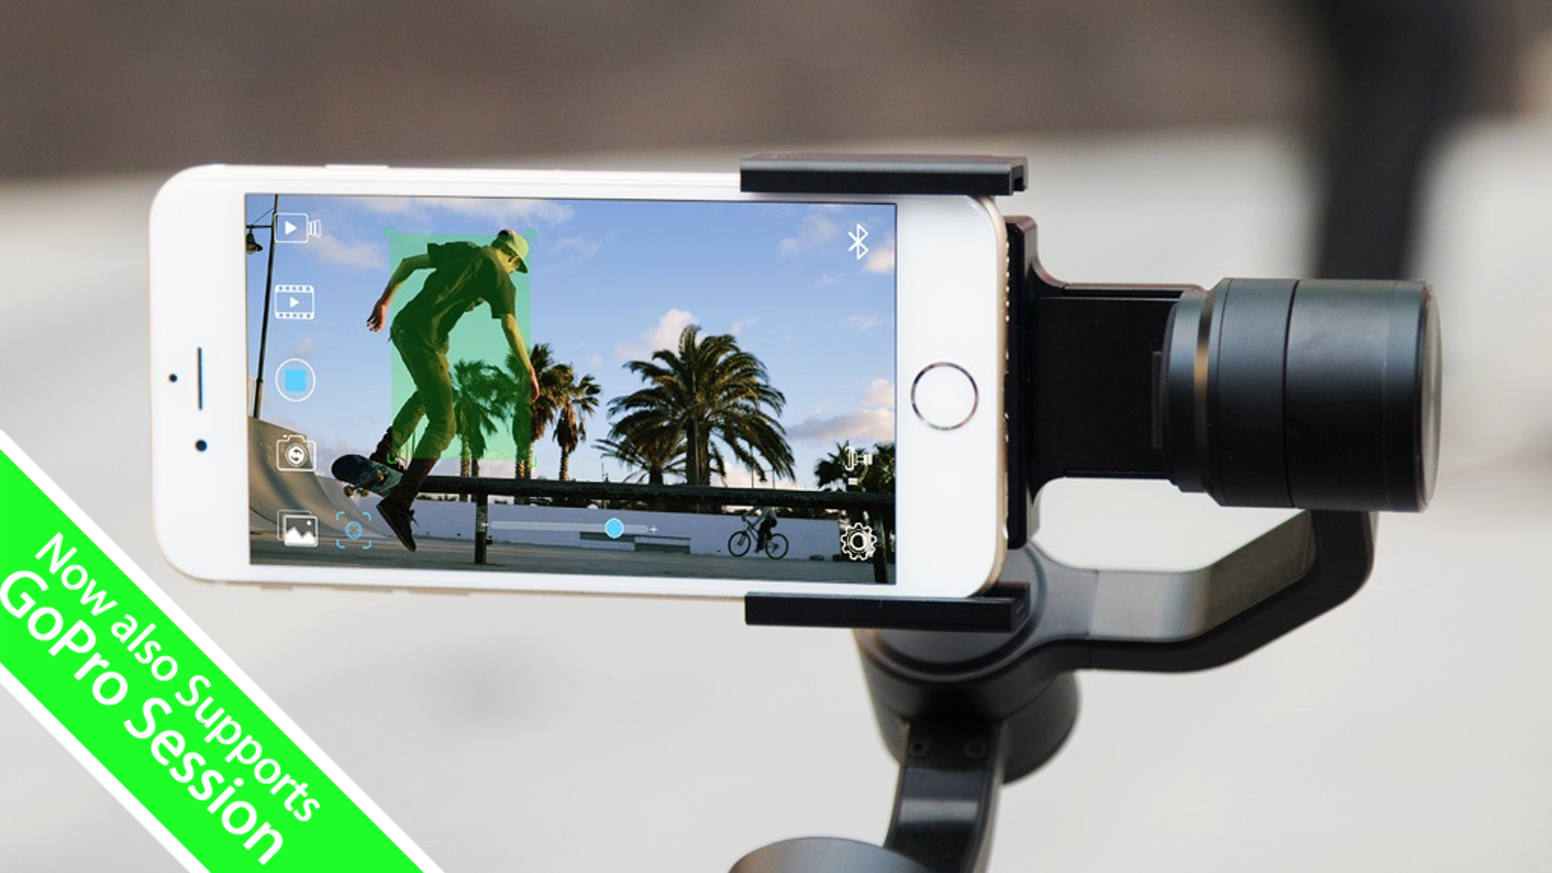 Smooth videos, auto-track, motion time-lapse, panorama, long-exposure & more...Capture Your Life With Rigiet